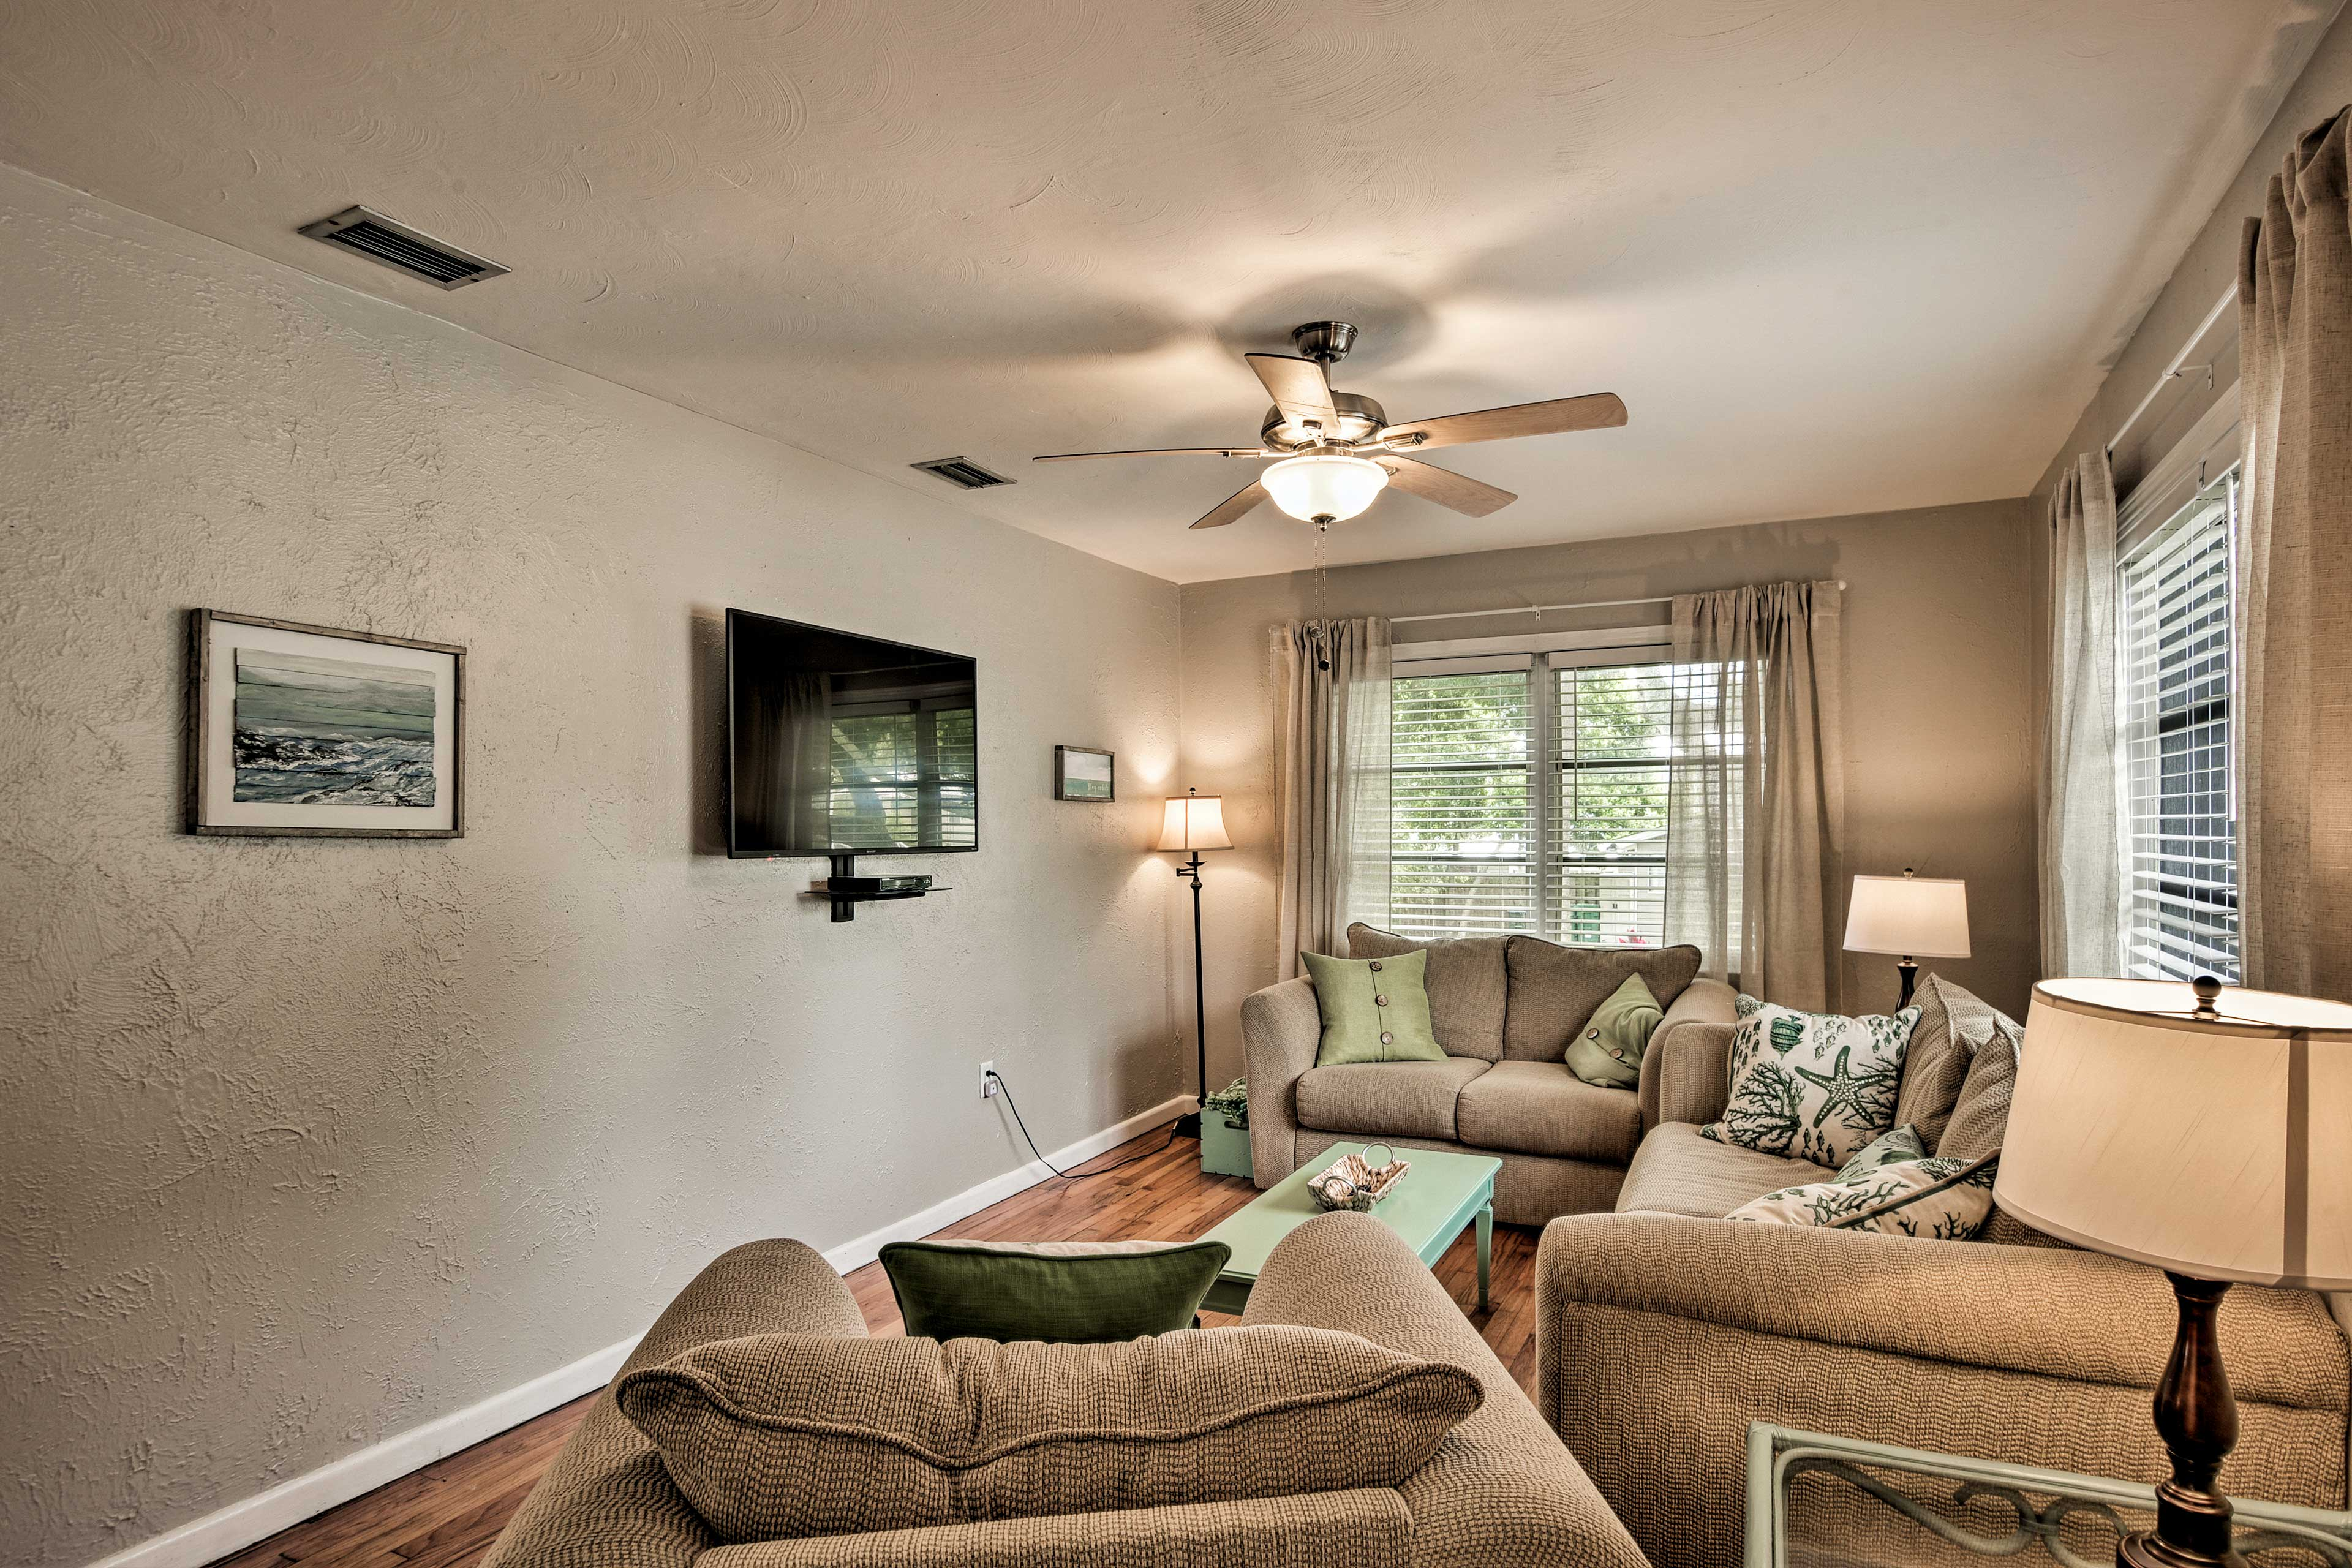 Ceiling fans and central air conditioning will keep you cool.